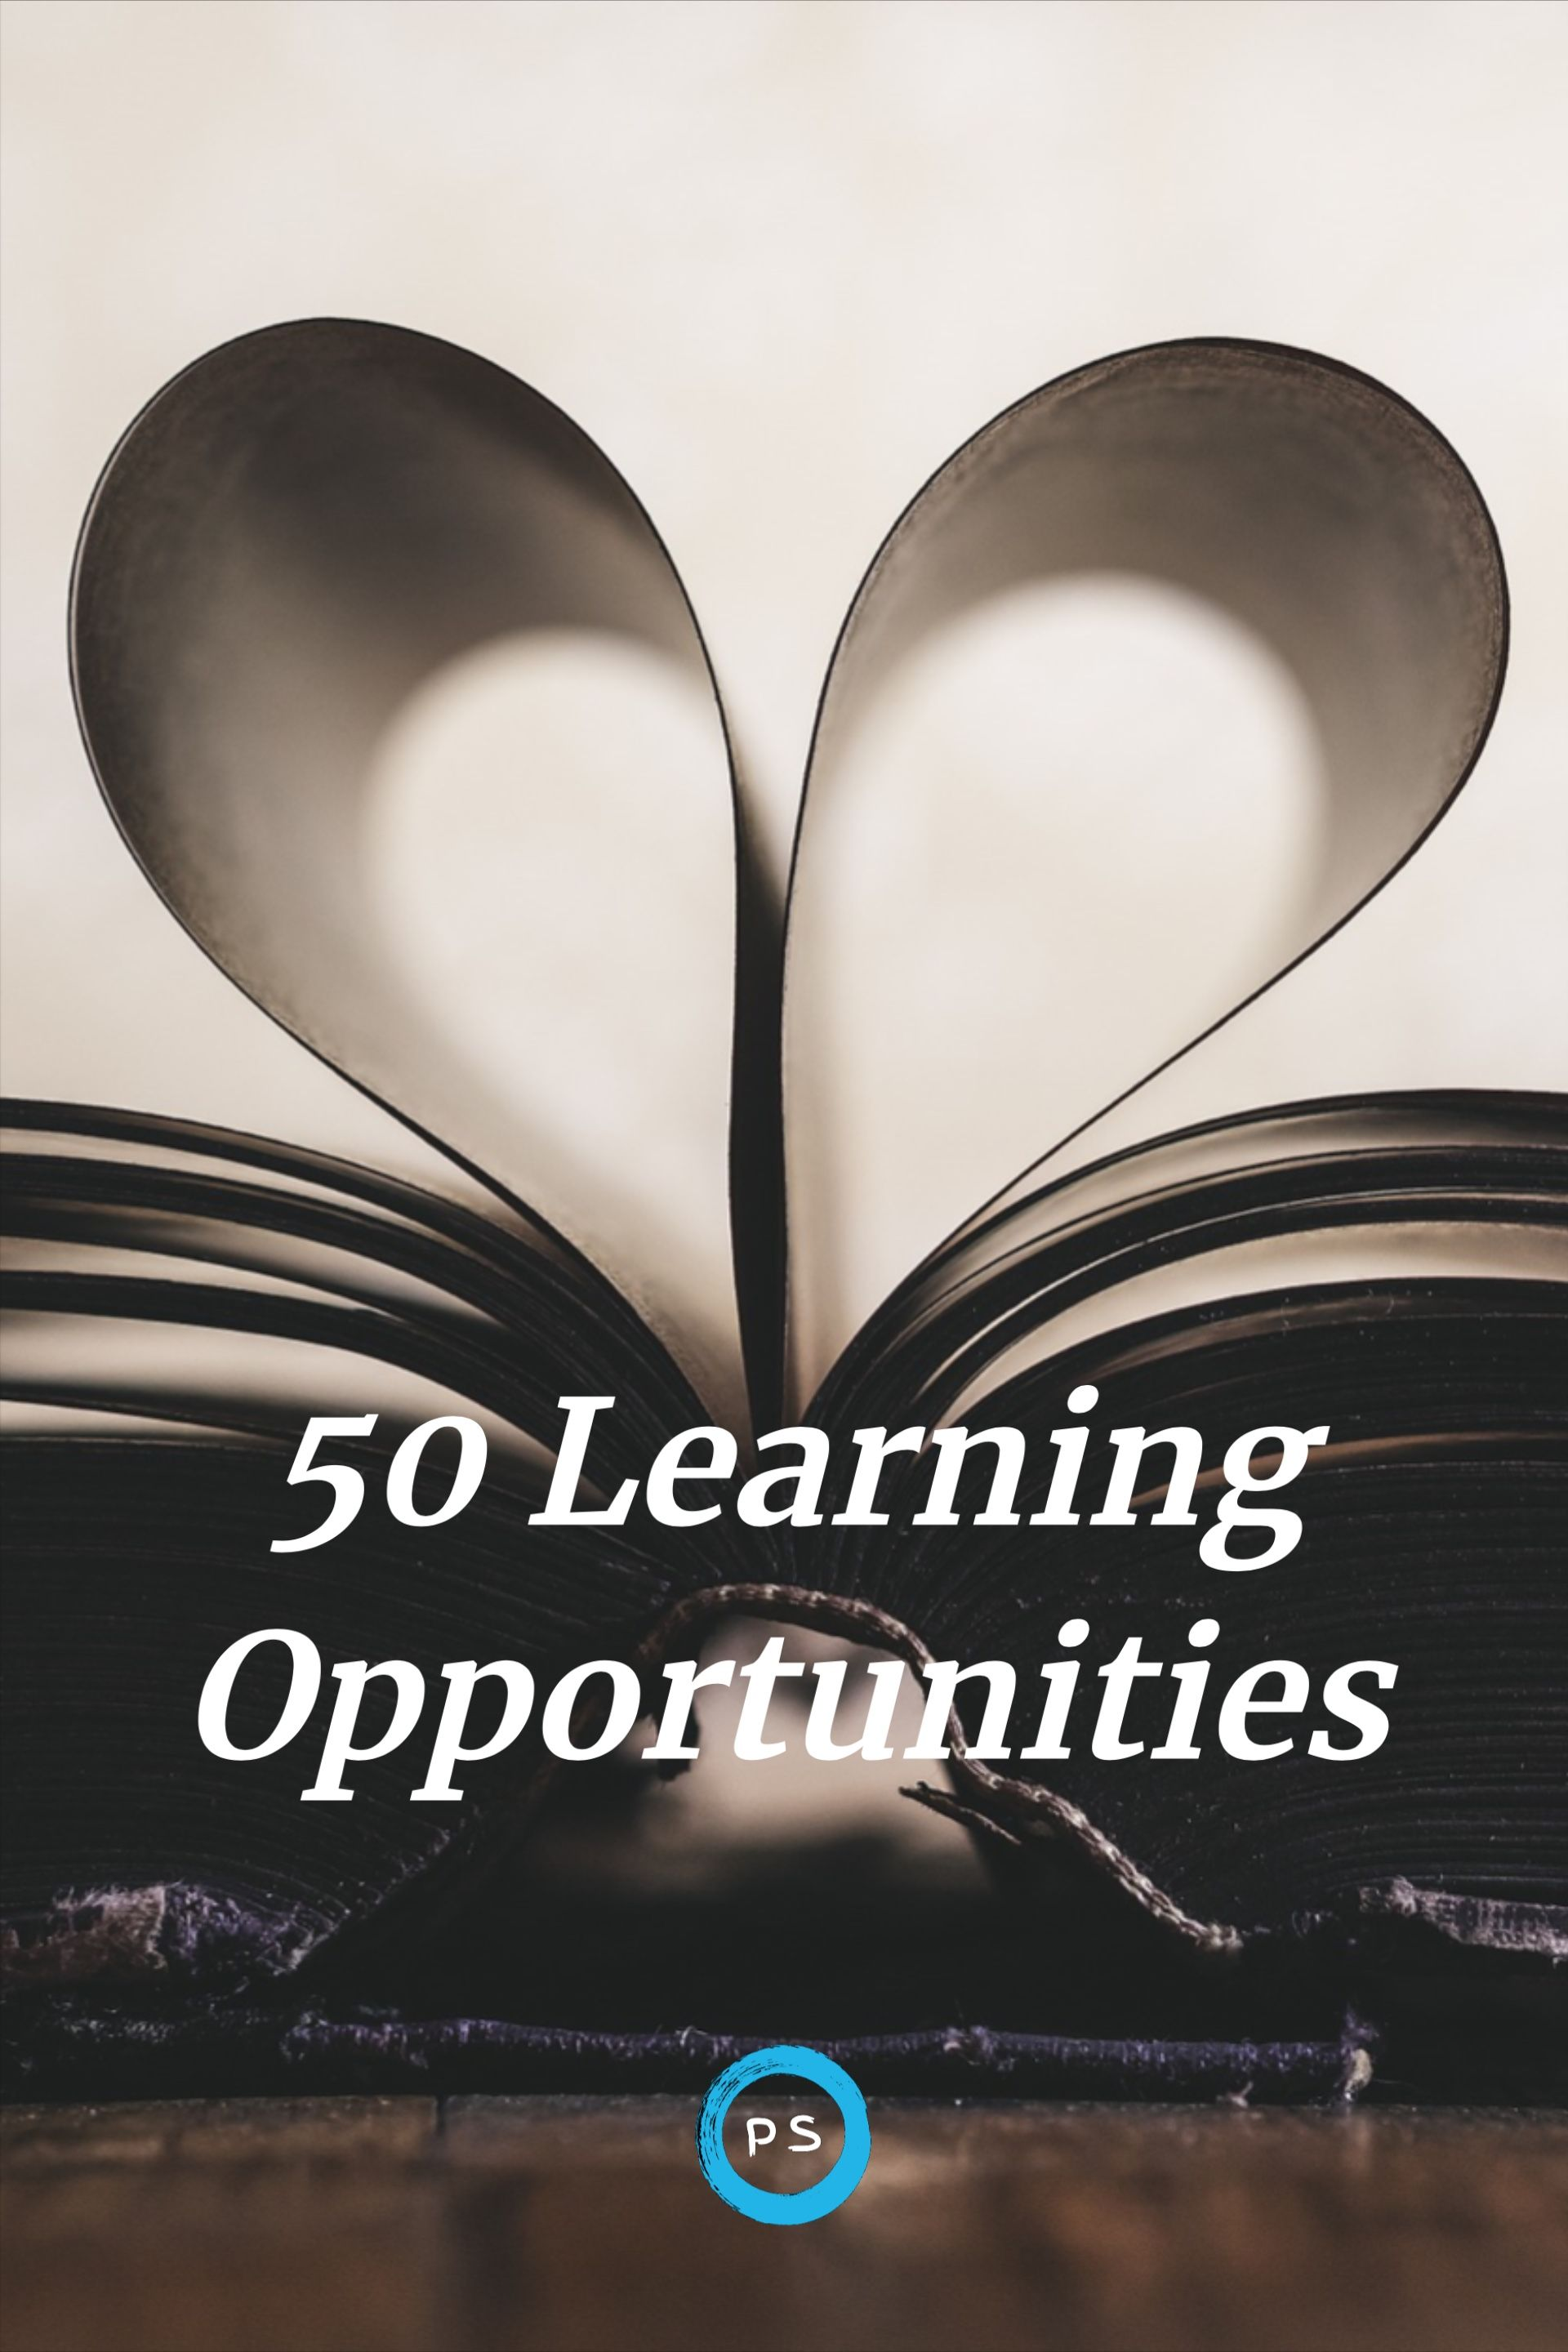 50 Learning Opportunities Learning Never Stop Learning Mental Wellbeing